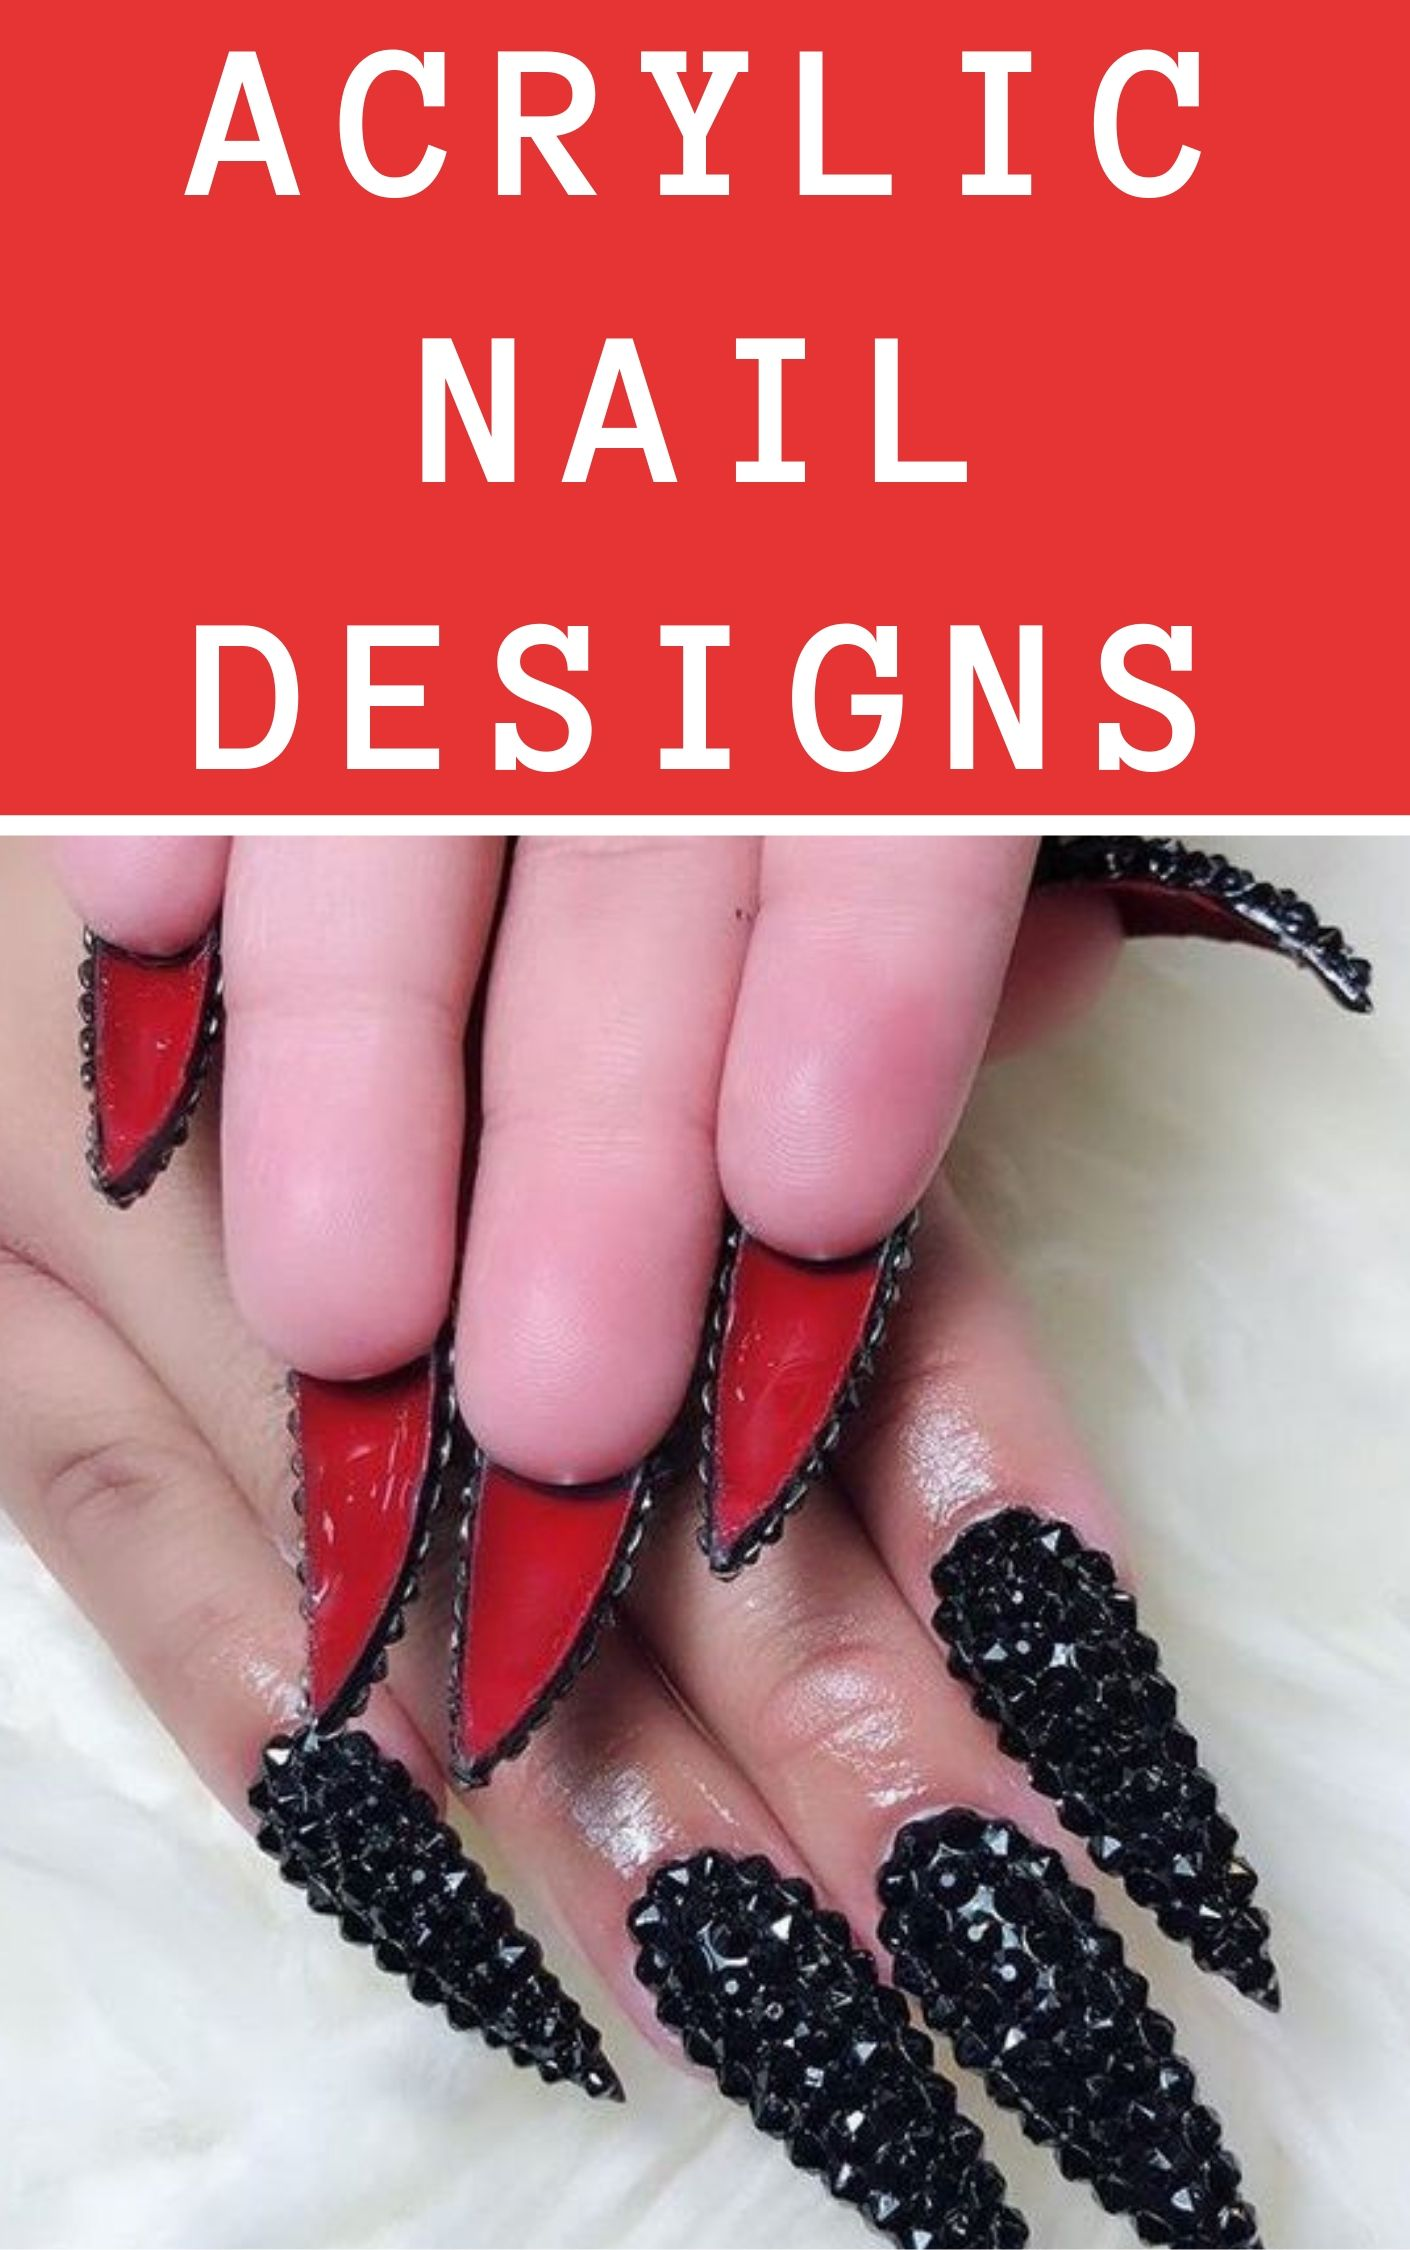 10 Acrylic Nail Designs For You To Impress Everyone Acrylic Nail Designs Nail Designs Acrylic Nails